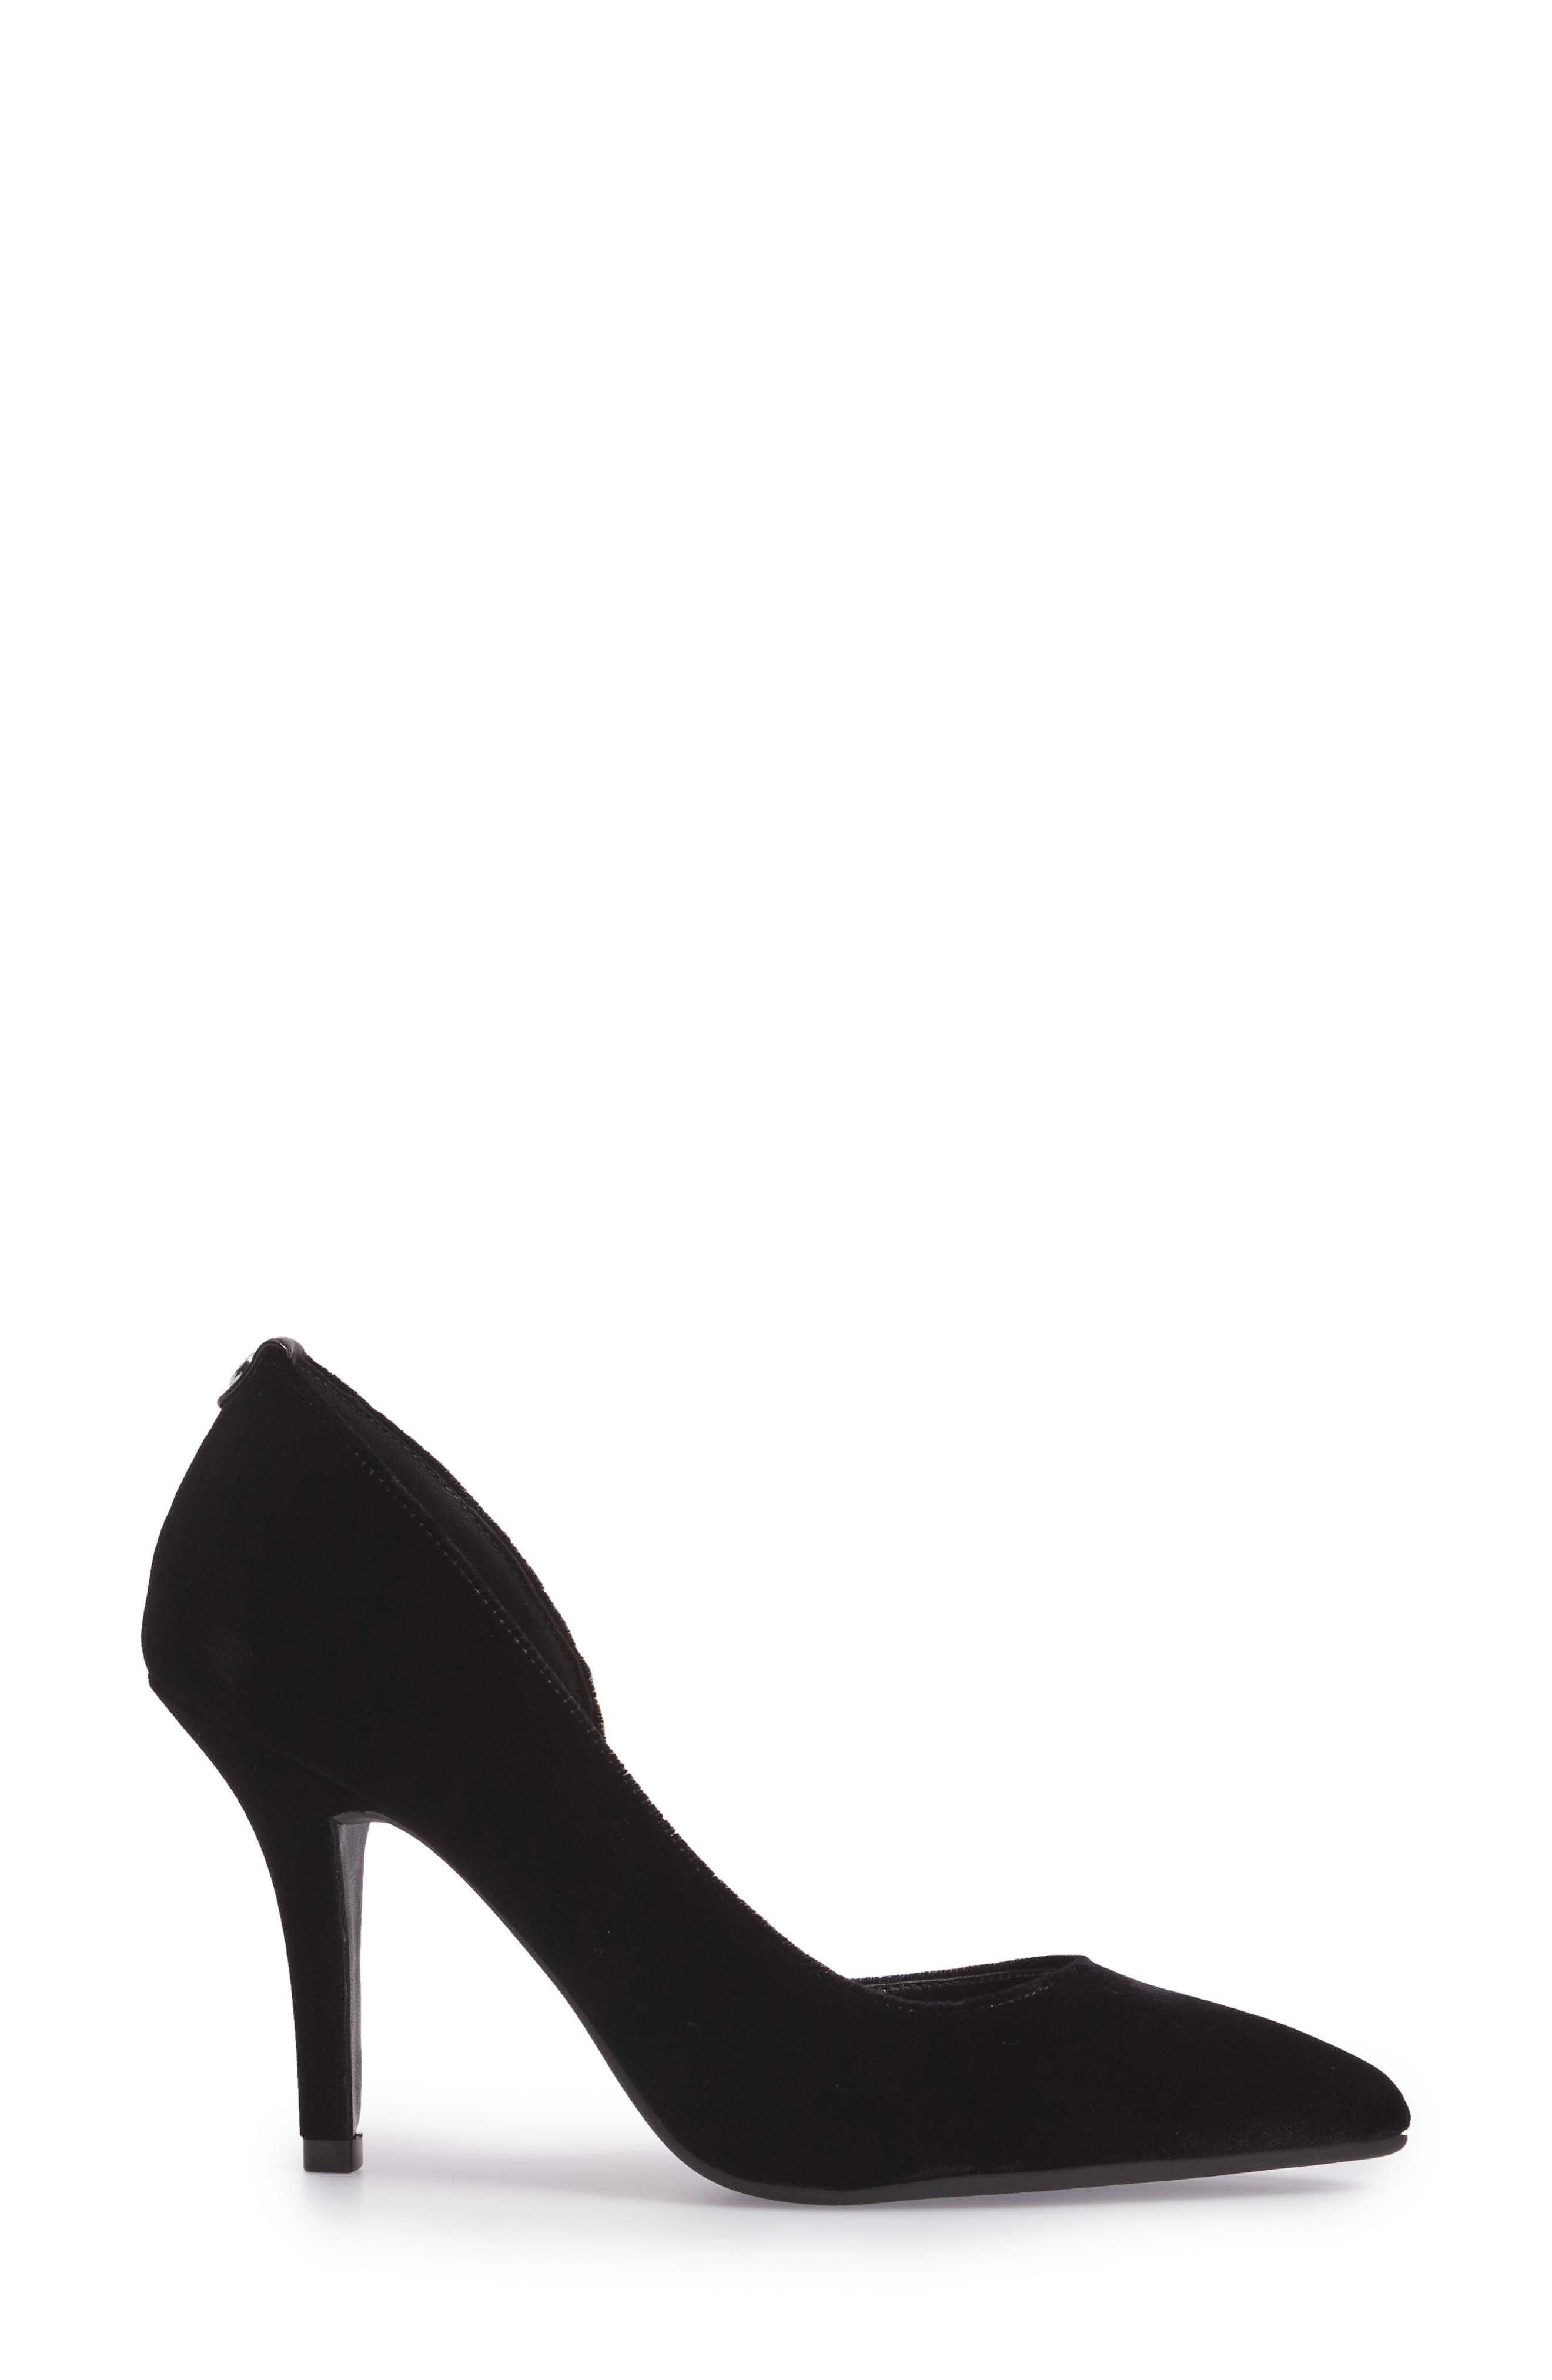 'Nathalie Flex' Half D'Orsay Pump,                             Alternate thumbnail 3, color,                             002